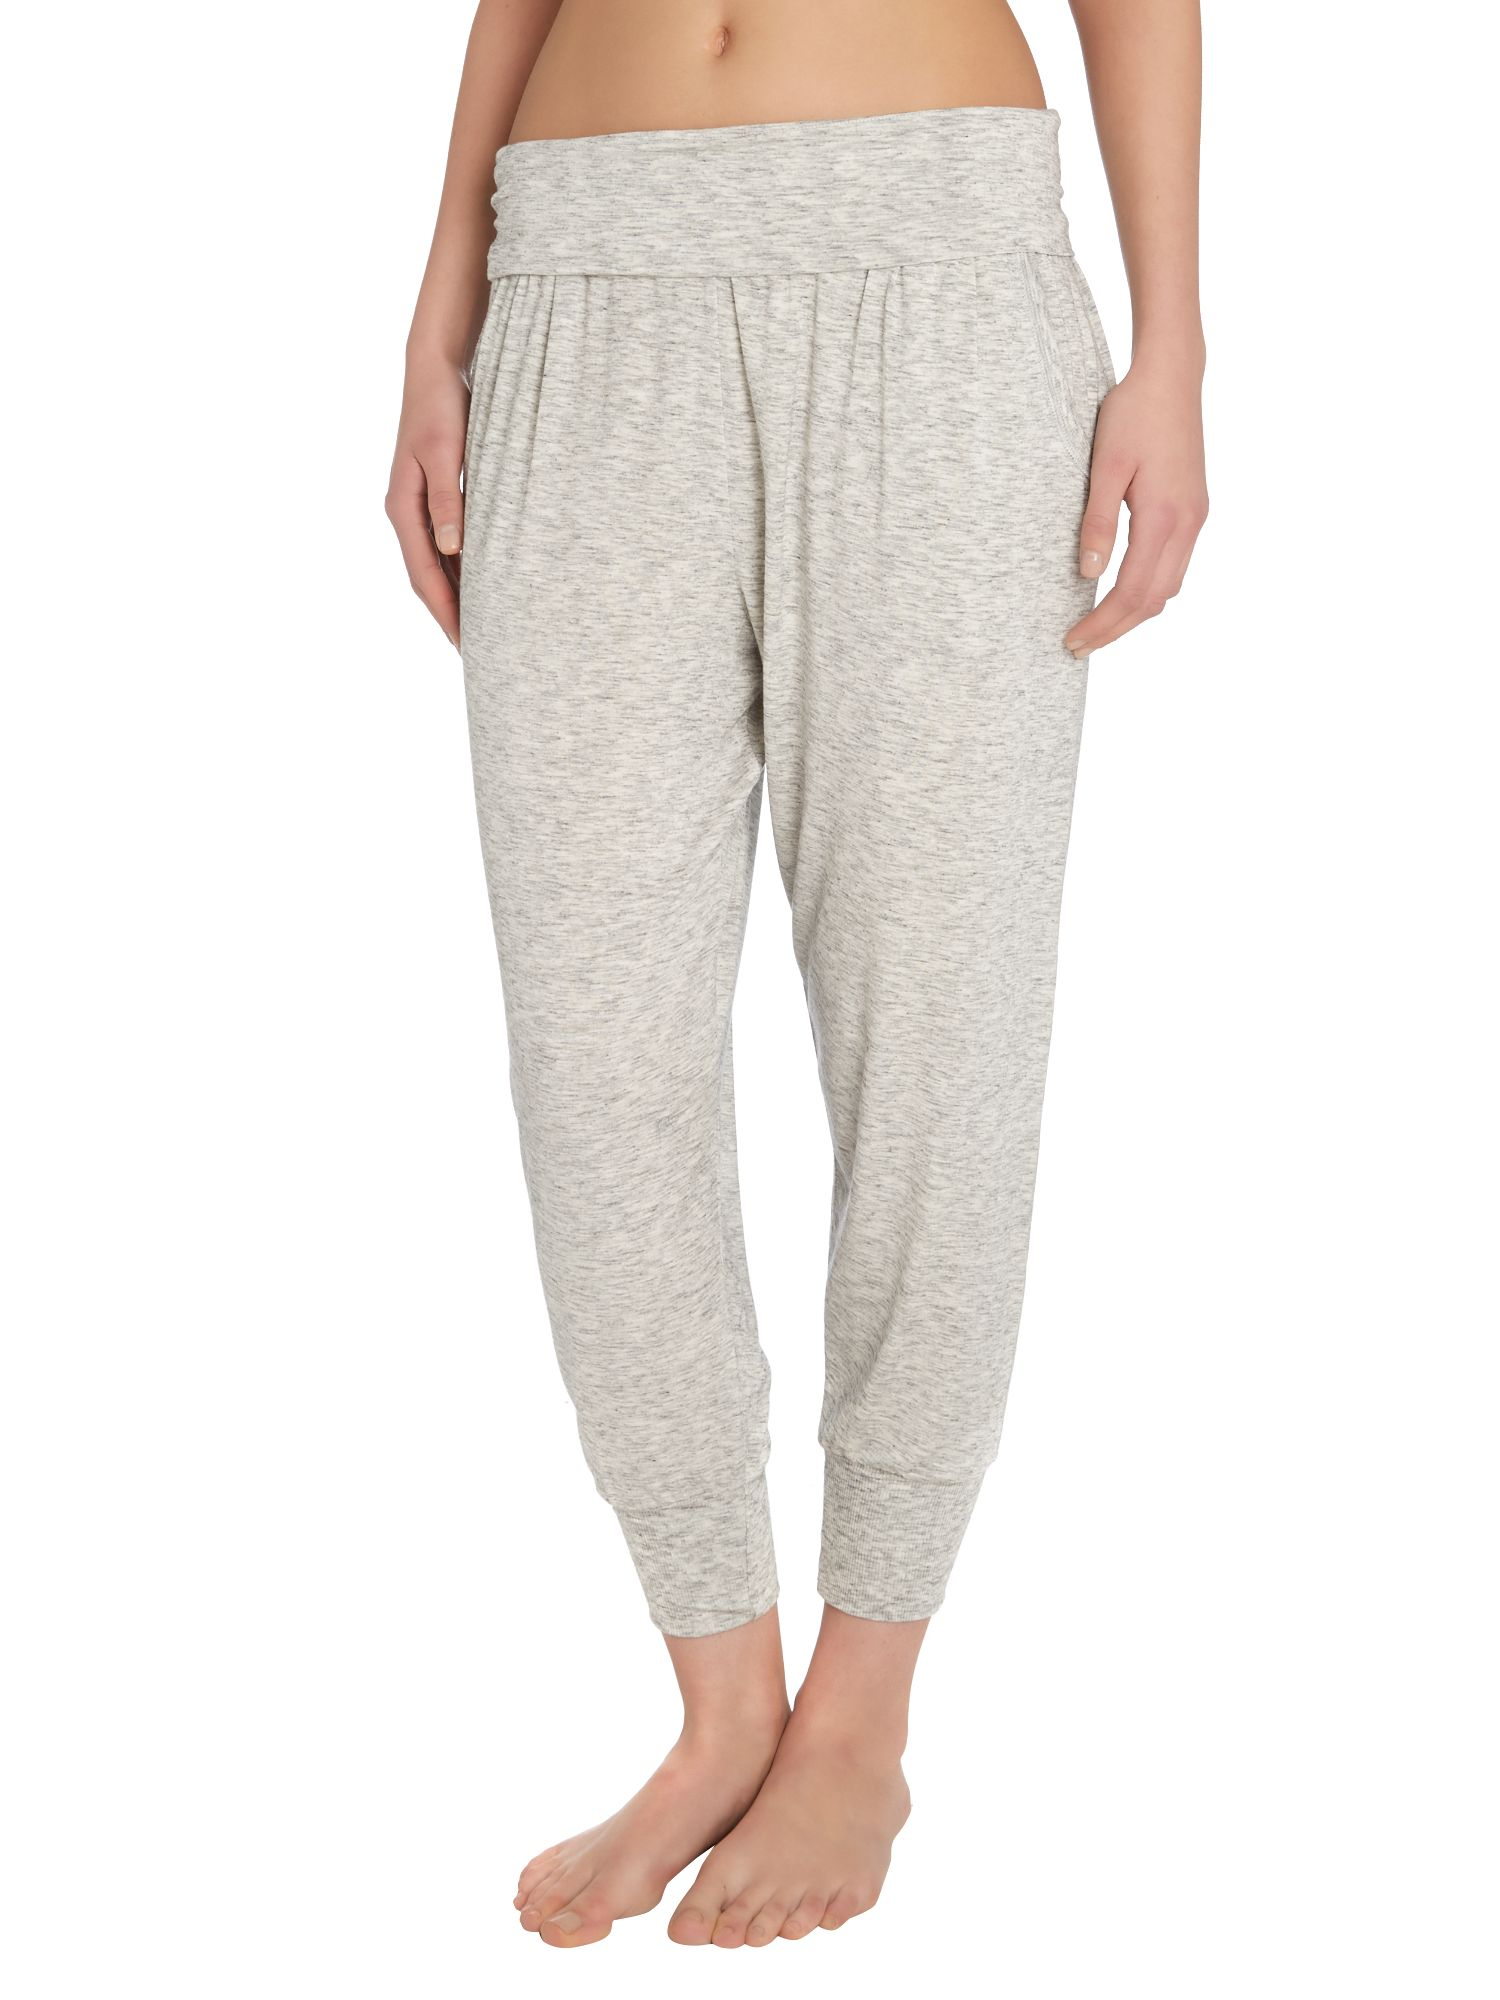 City essentials yoga pant